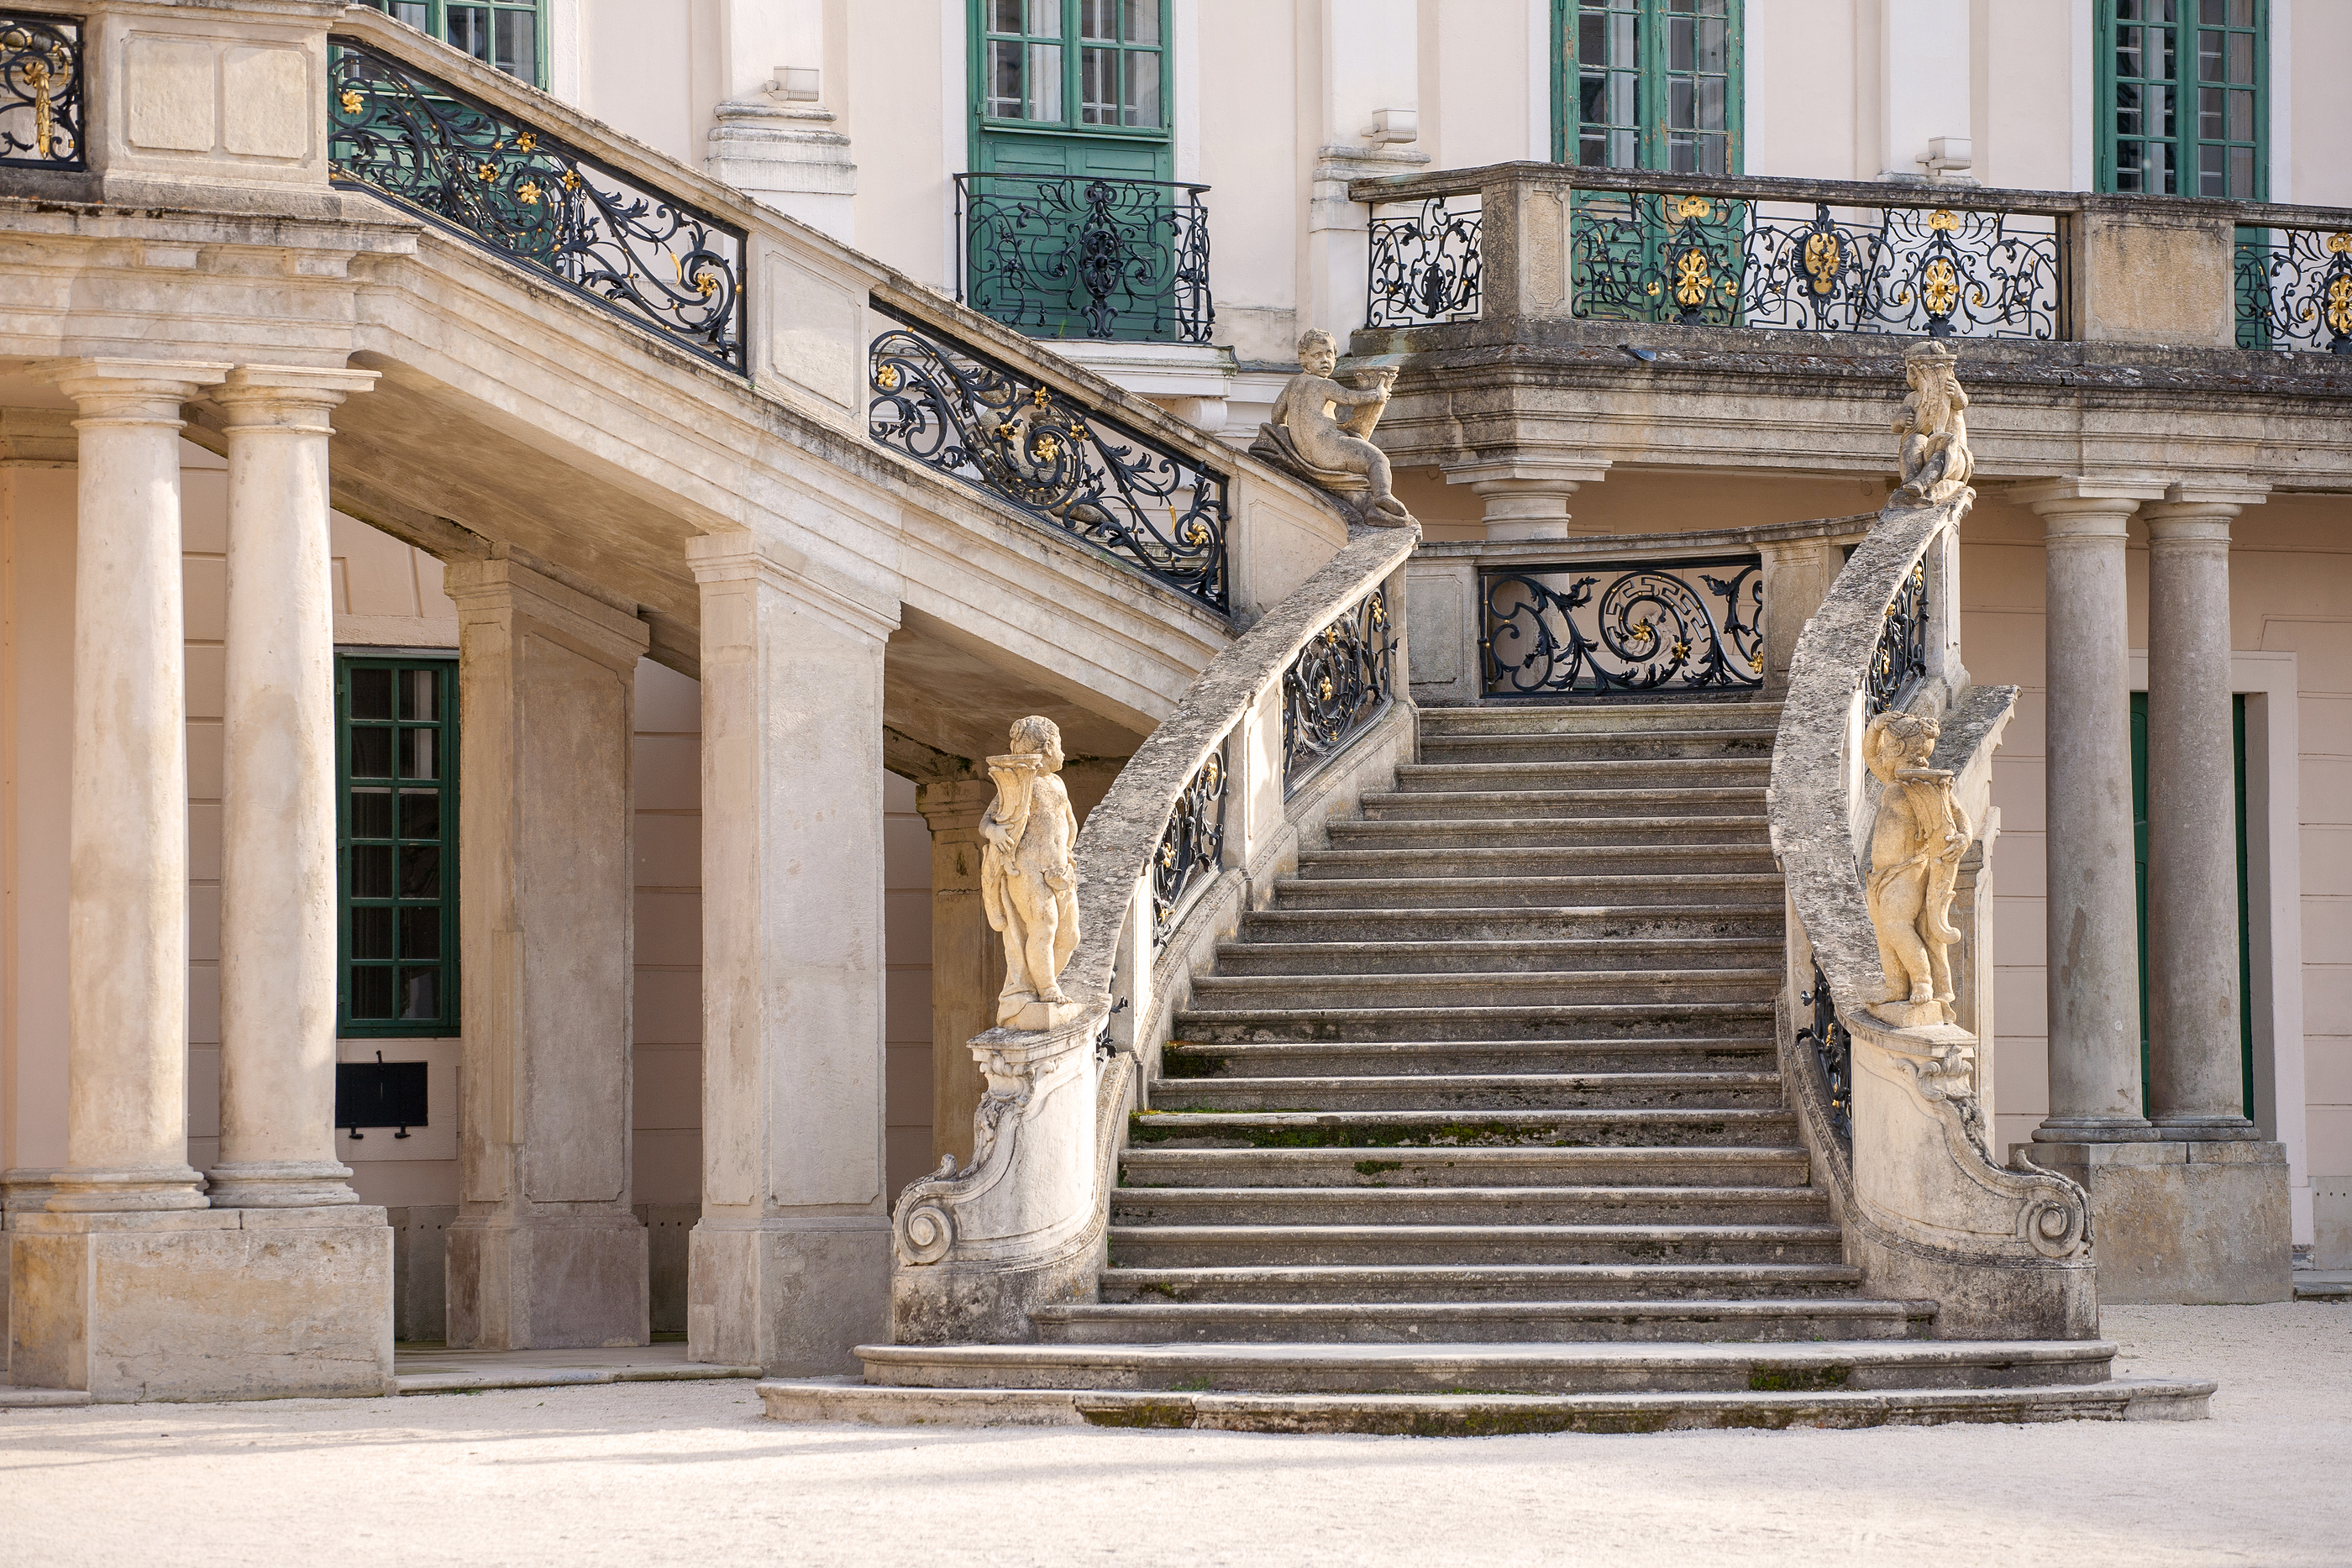 THE ESTERHAZY CASTLE PALACE STAIRS